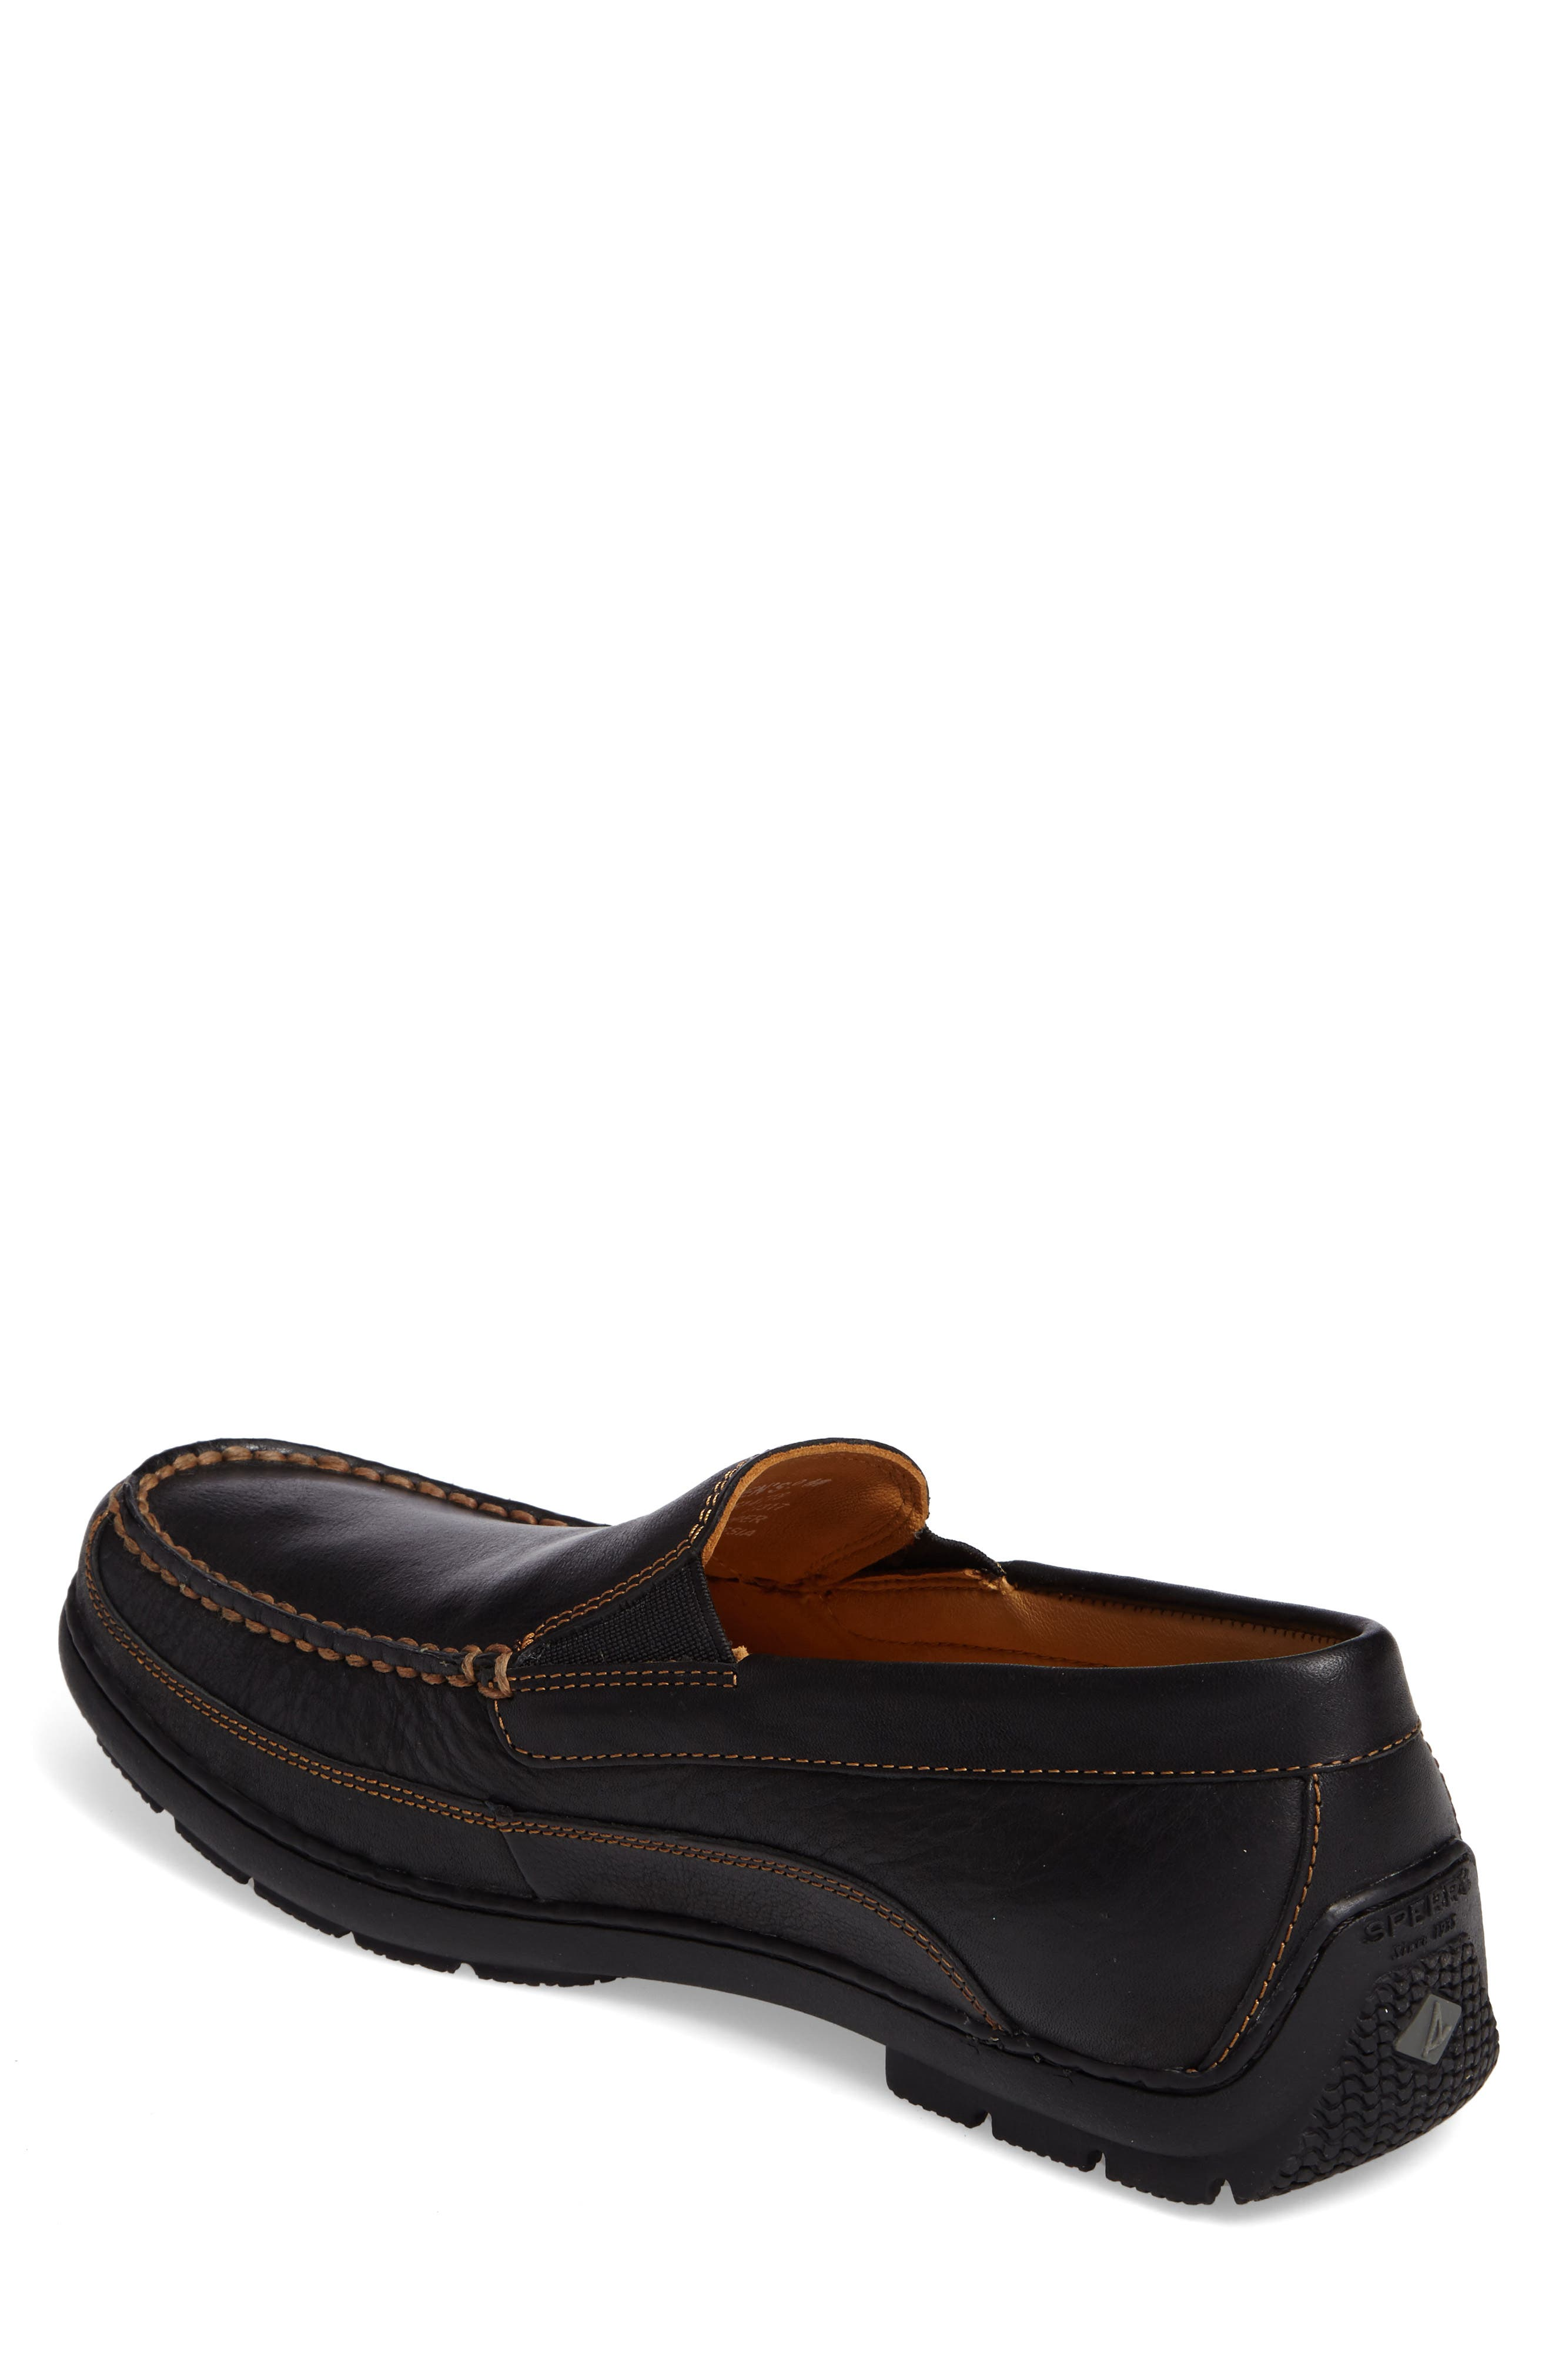 Gold Cup Loafer,                             Alternate thumbnail 2, color,                             001